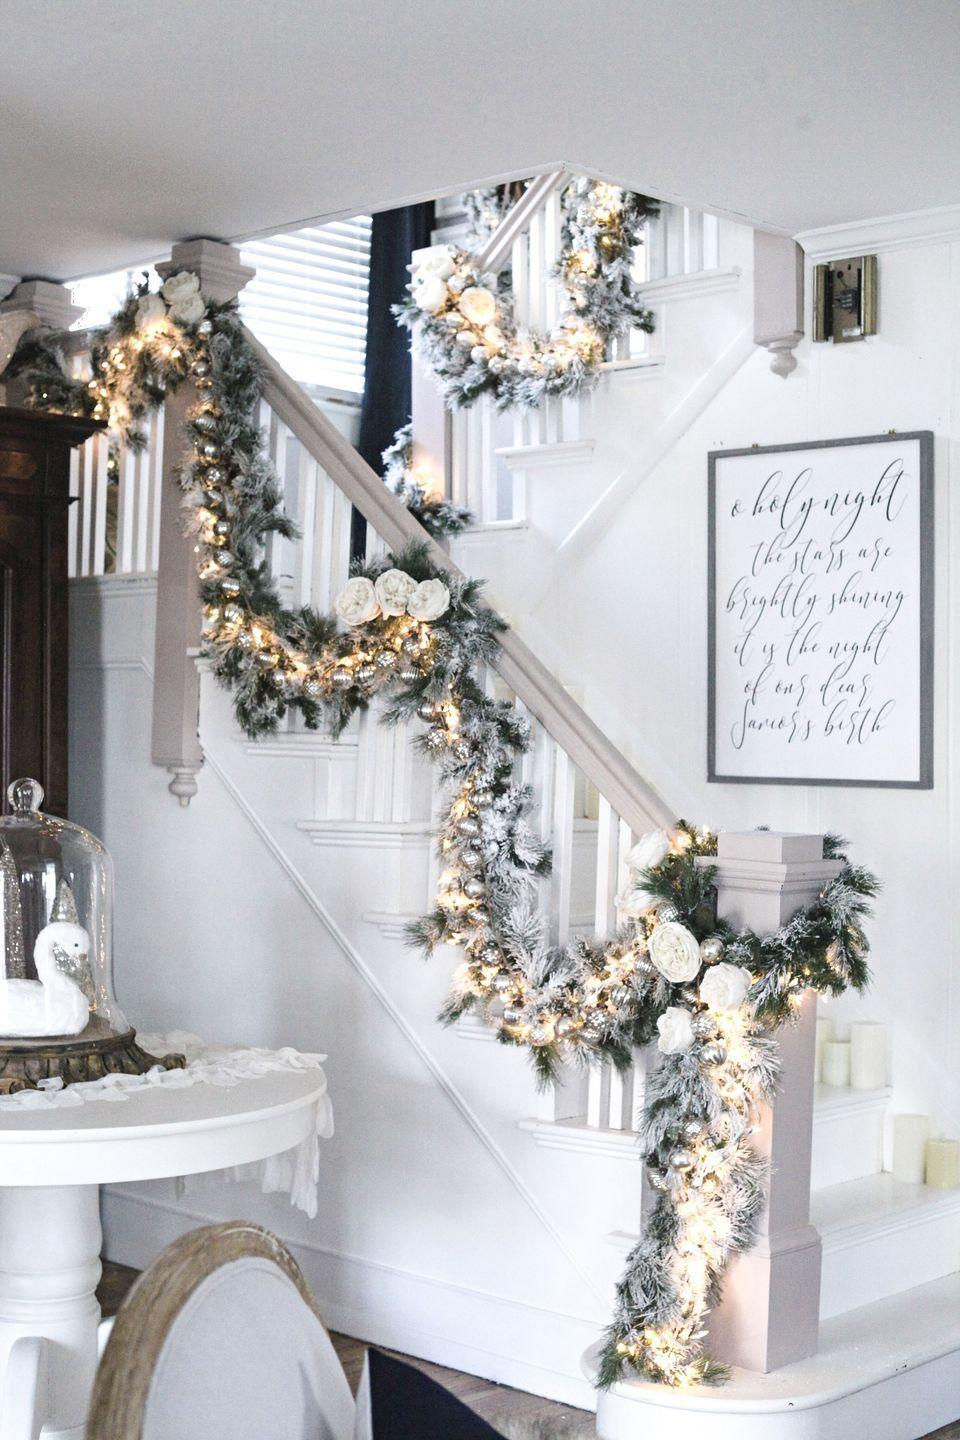 """<p>Frosty holiday stair decor assembled by Tammy Damore of <a href=""""http://tammydamore.com/"""" rel=""""nofollow noopener"""" target=""""_blank"""" data-ylk=""""slk:The Cultivated Home"""" class=""""link rapid-noclick-resp"""">The Cultivated Home</a> has us dreaming of a white Christmas, with snow-dusted garland and white roses. </p>"""